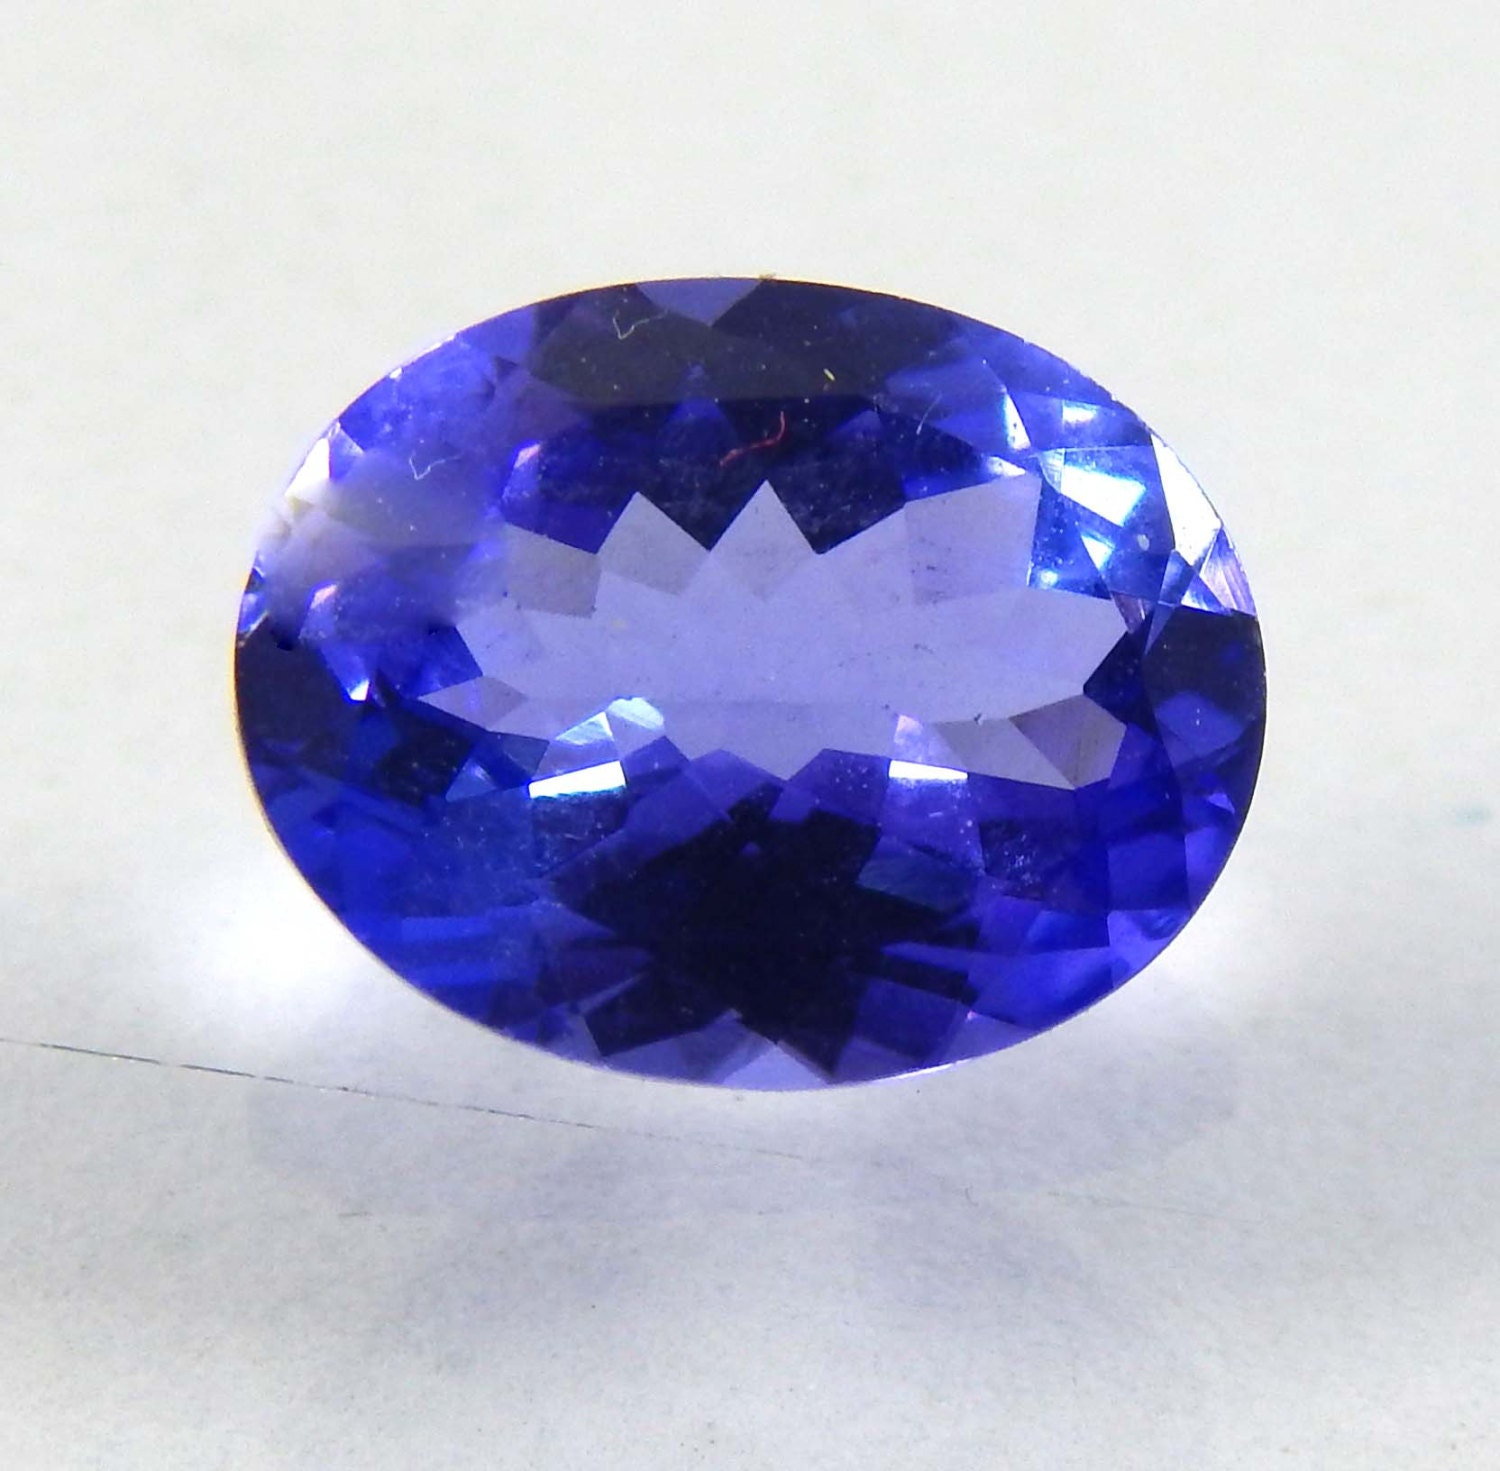 engagement rare for d certified tanzanite ring trillion my loose necklace pendant products block grade bridal cts natural more natura and affair cut blue aaa jewelry triangle investment cornflower